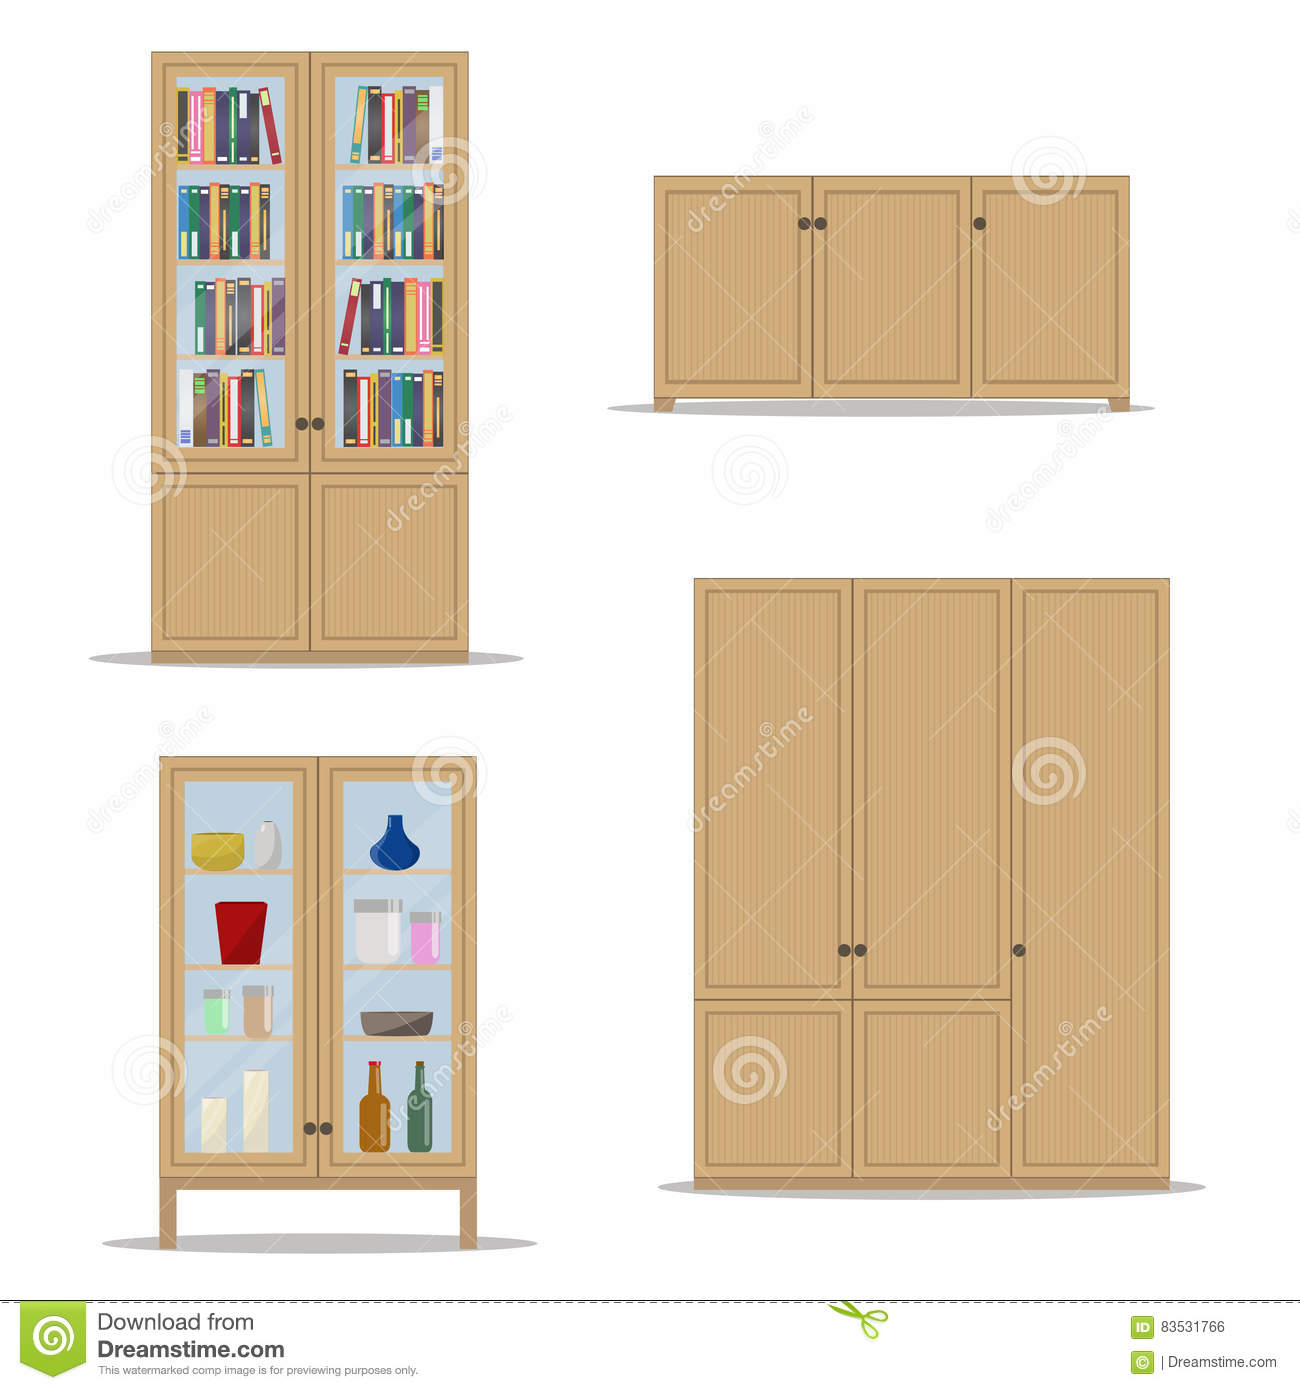 Interior wooden shelves free vector - Bookshelf Cabinet Classic Cupboard Flat Illustration Interior Isolated Style Vector Wardrobe Wooden Bedroom Living Brown Bookcase